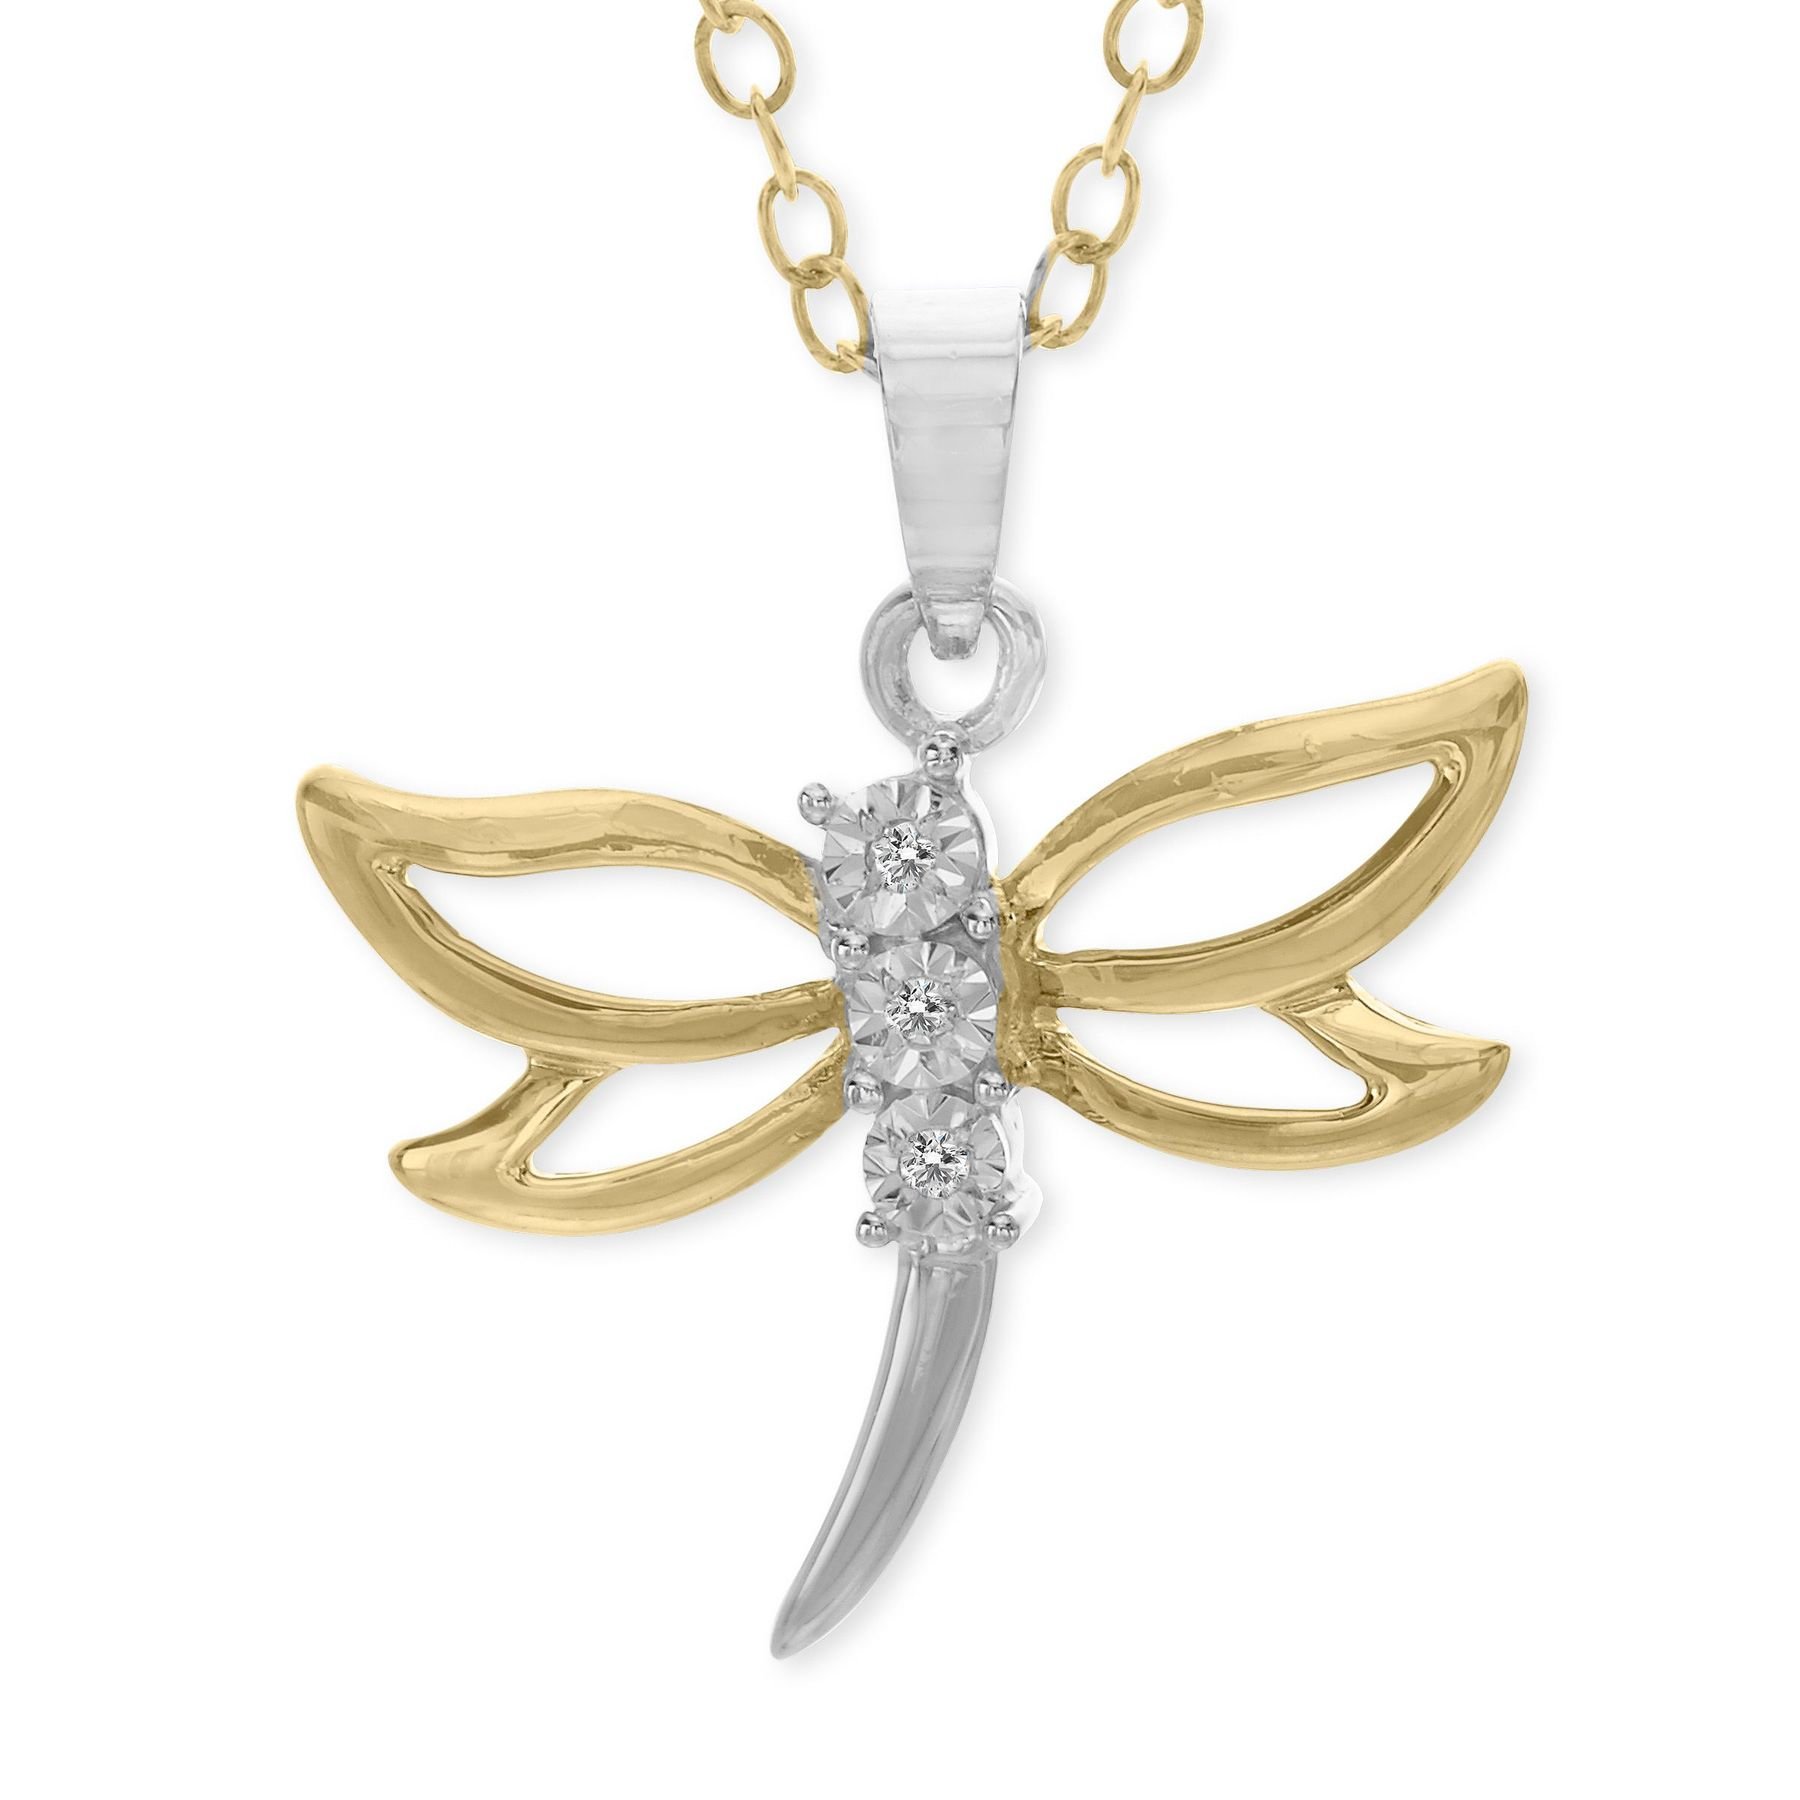 necklace luck wisdom e victory sterling ornata delicate silver products small pendant dragonfly